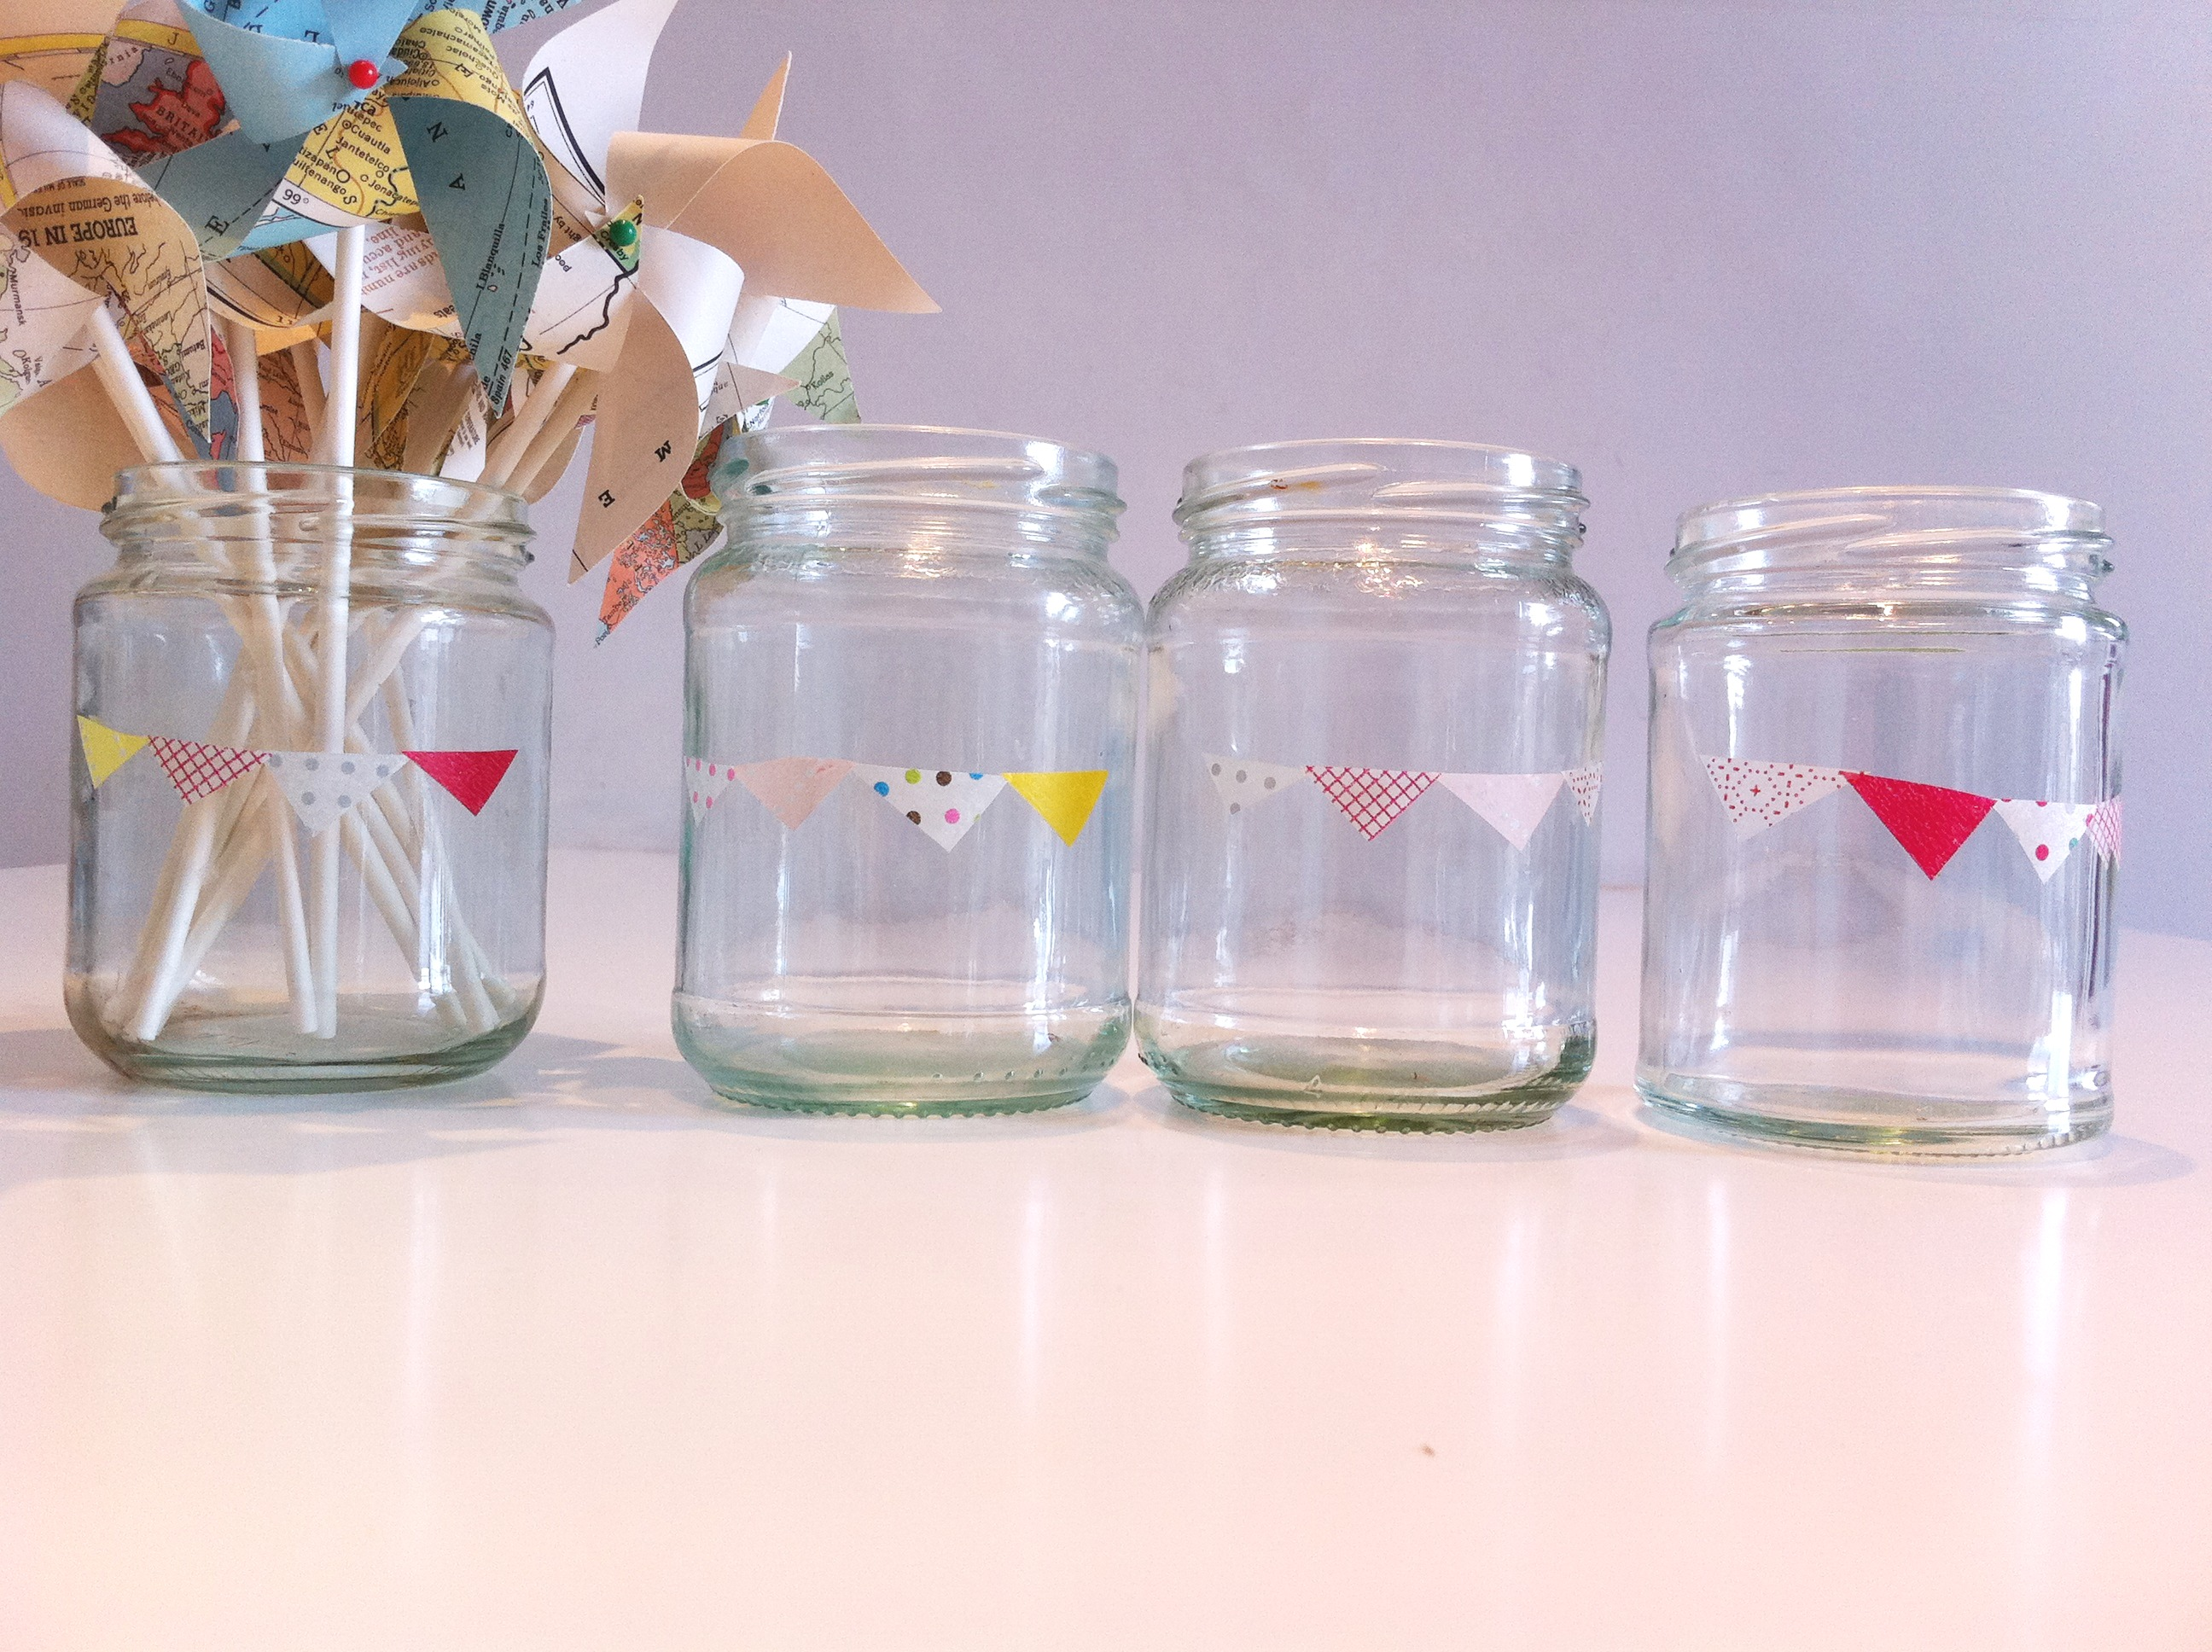 I Do Diy Jam Jars With Bunting And Hearts Washi Tape Conversation Pieces